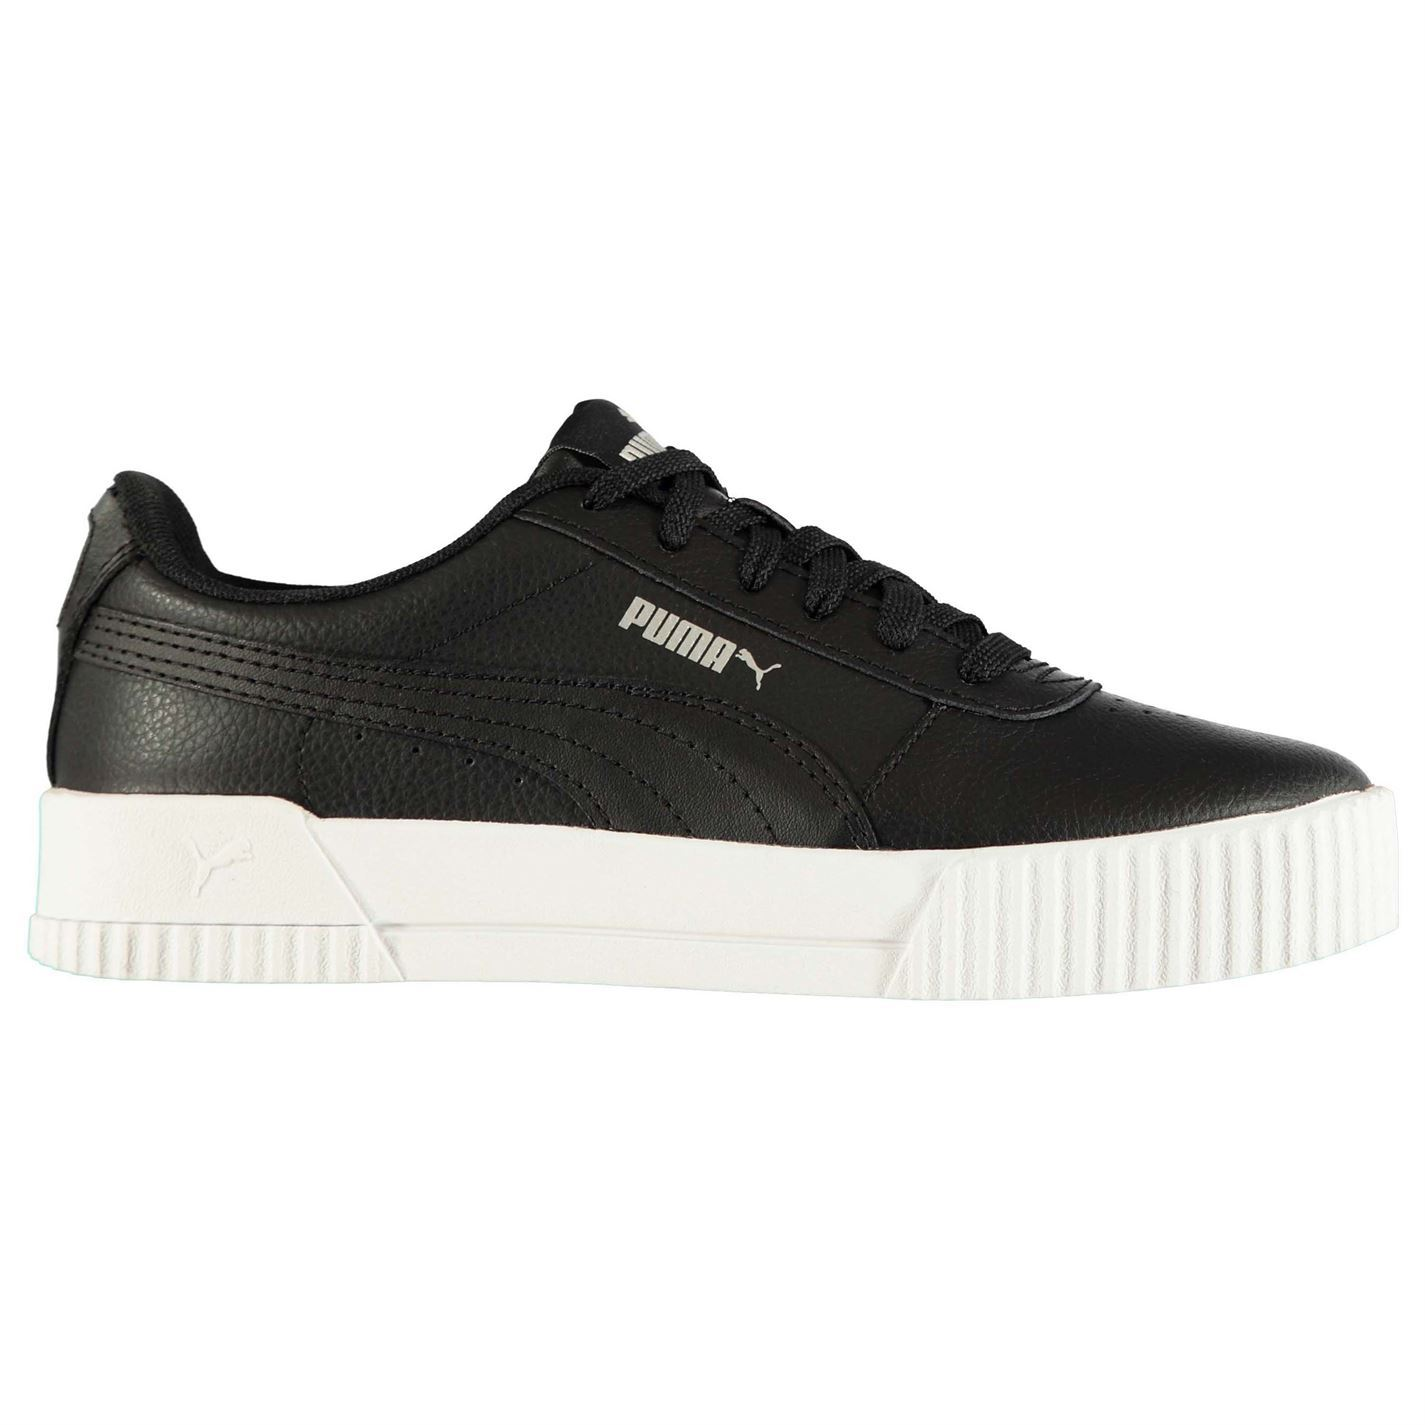 Don't Miss Sales on Carina Sneaker White PUMA Sneakers